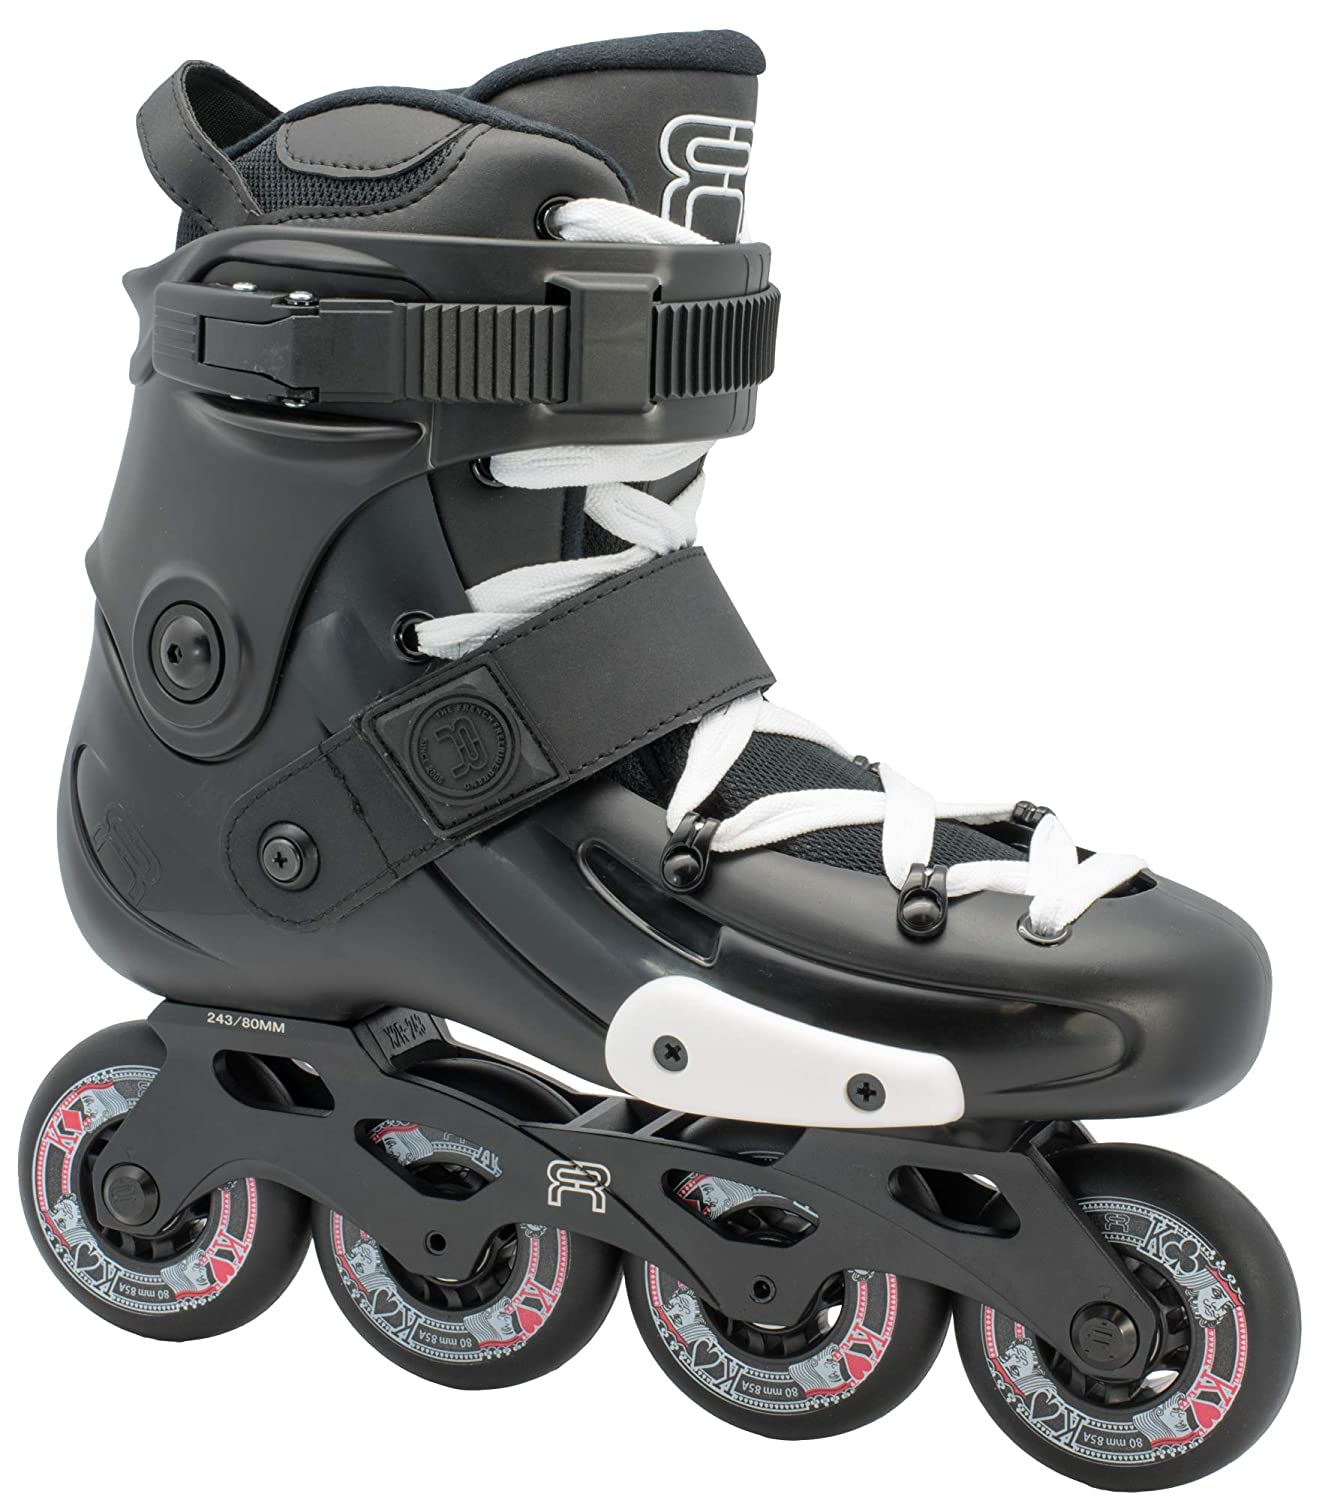 FR Skates FRX 80mm 2019 - Inline Skate for Freeride, Slalom, City Skating. Popular French Brand. Best patines en Linea or Rollerblades, high Performance Inline Skates